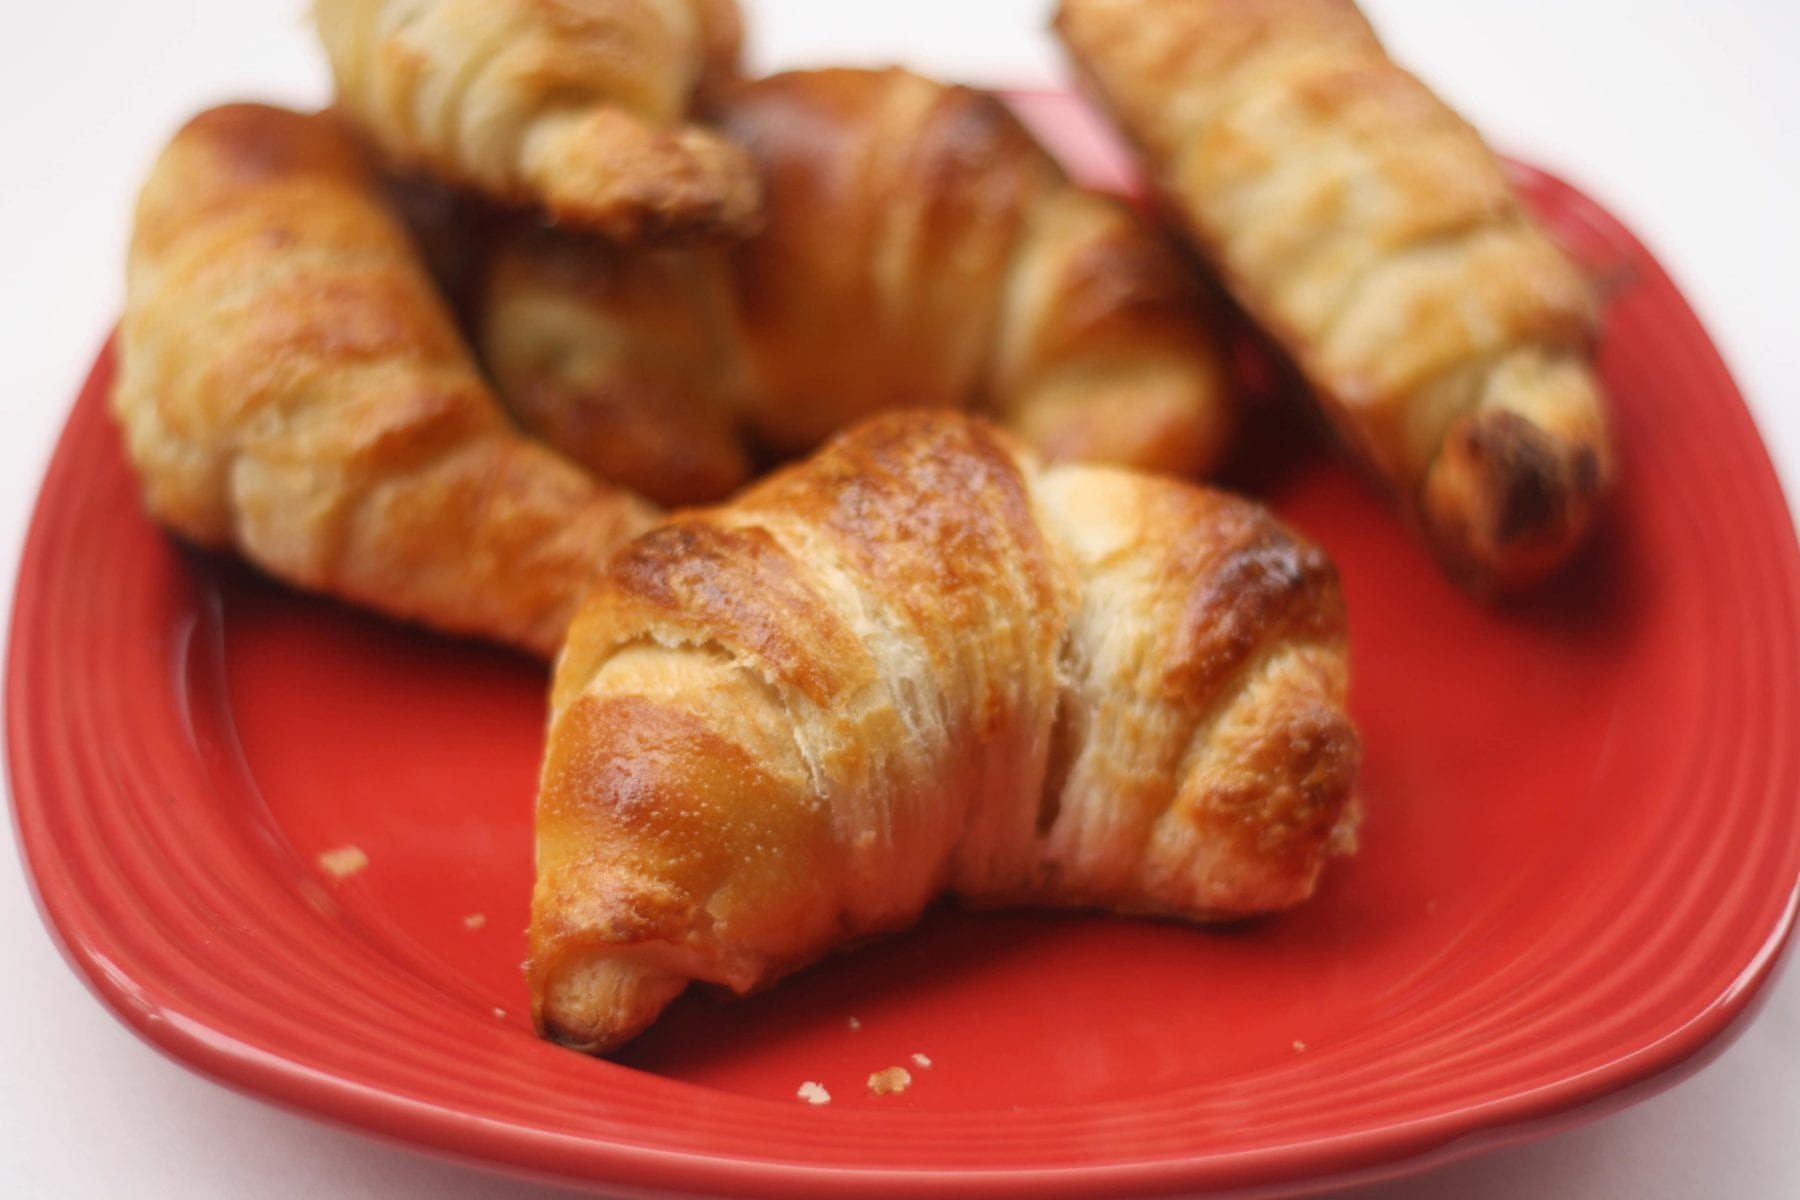 Daring Bakers – September 2011 – Croissants